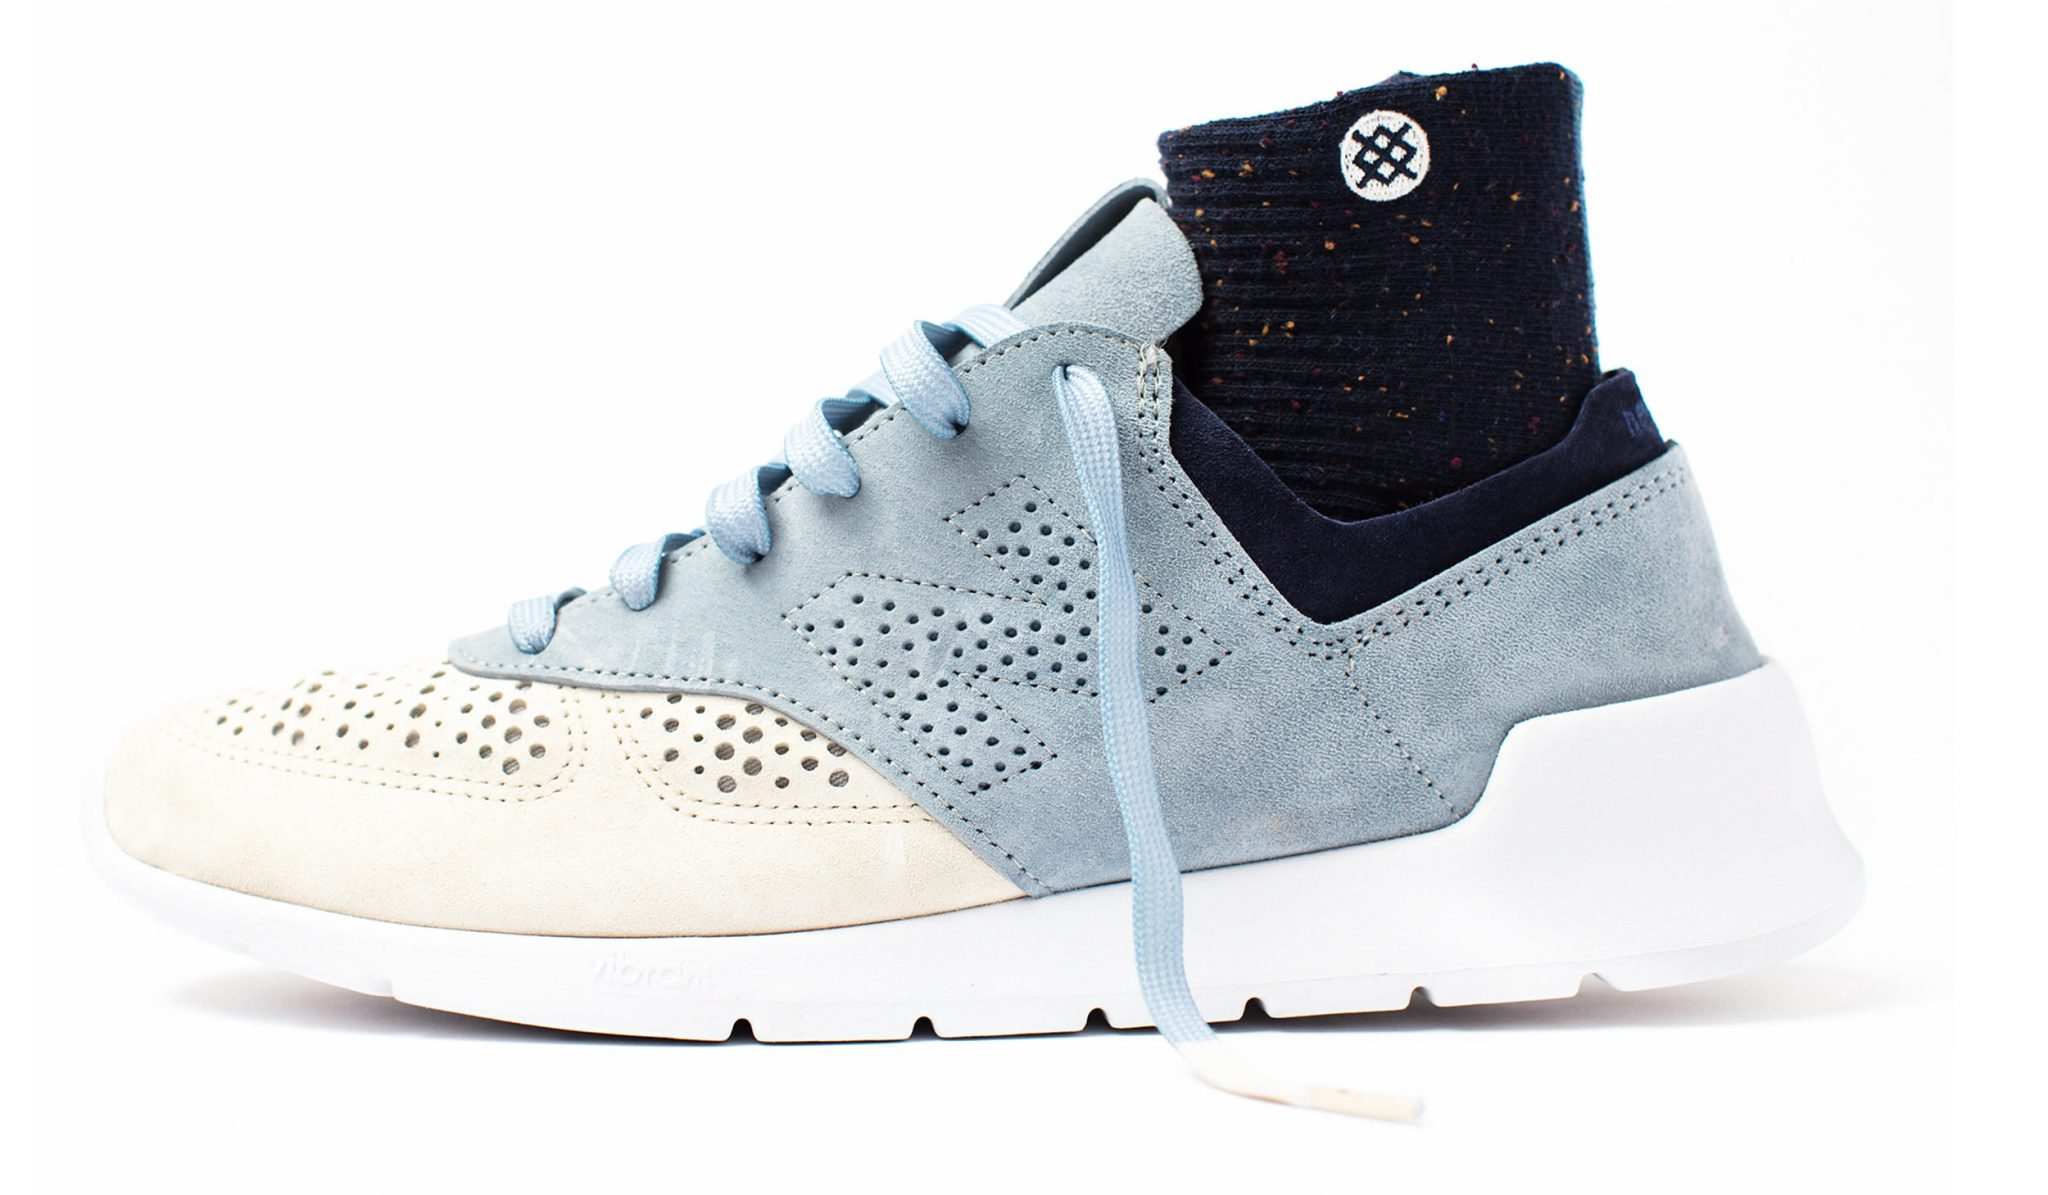 New Balance x Stance Socks | The Coolector